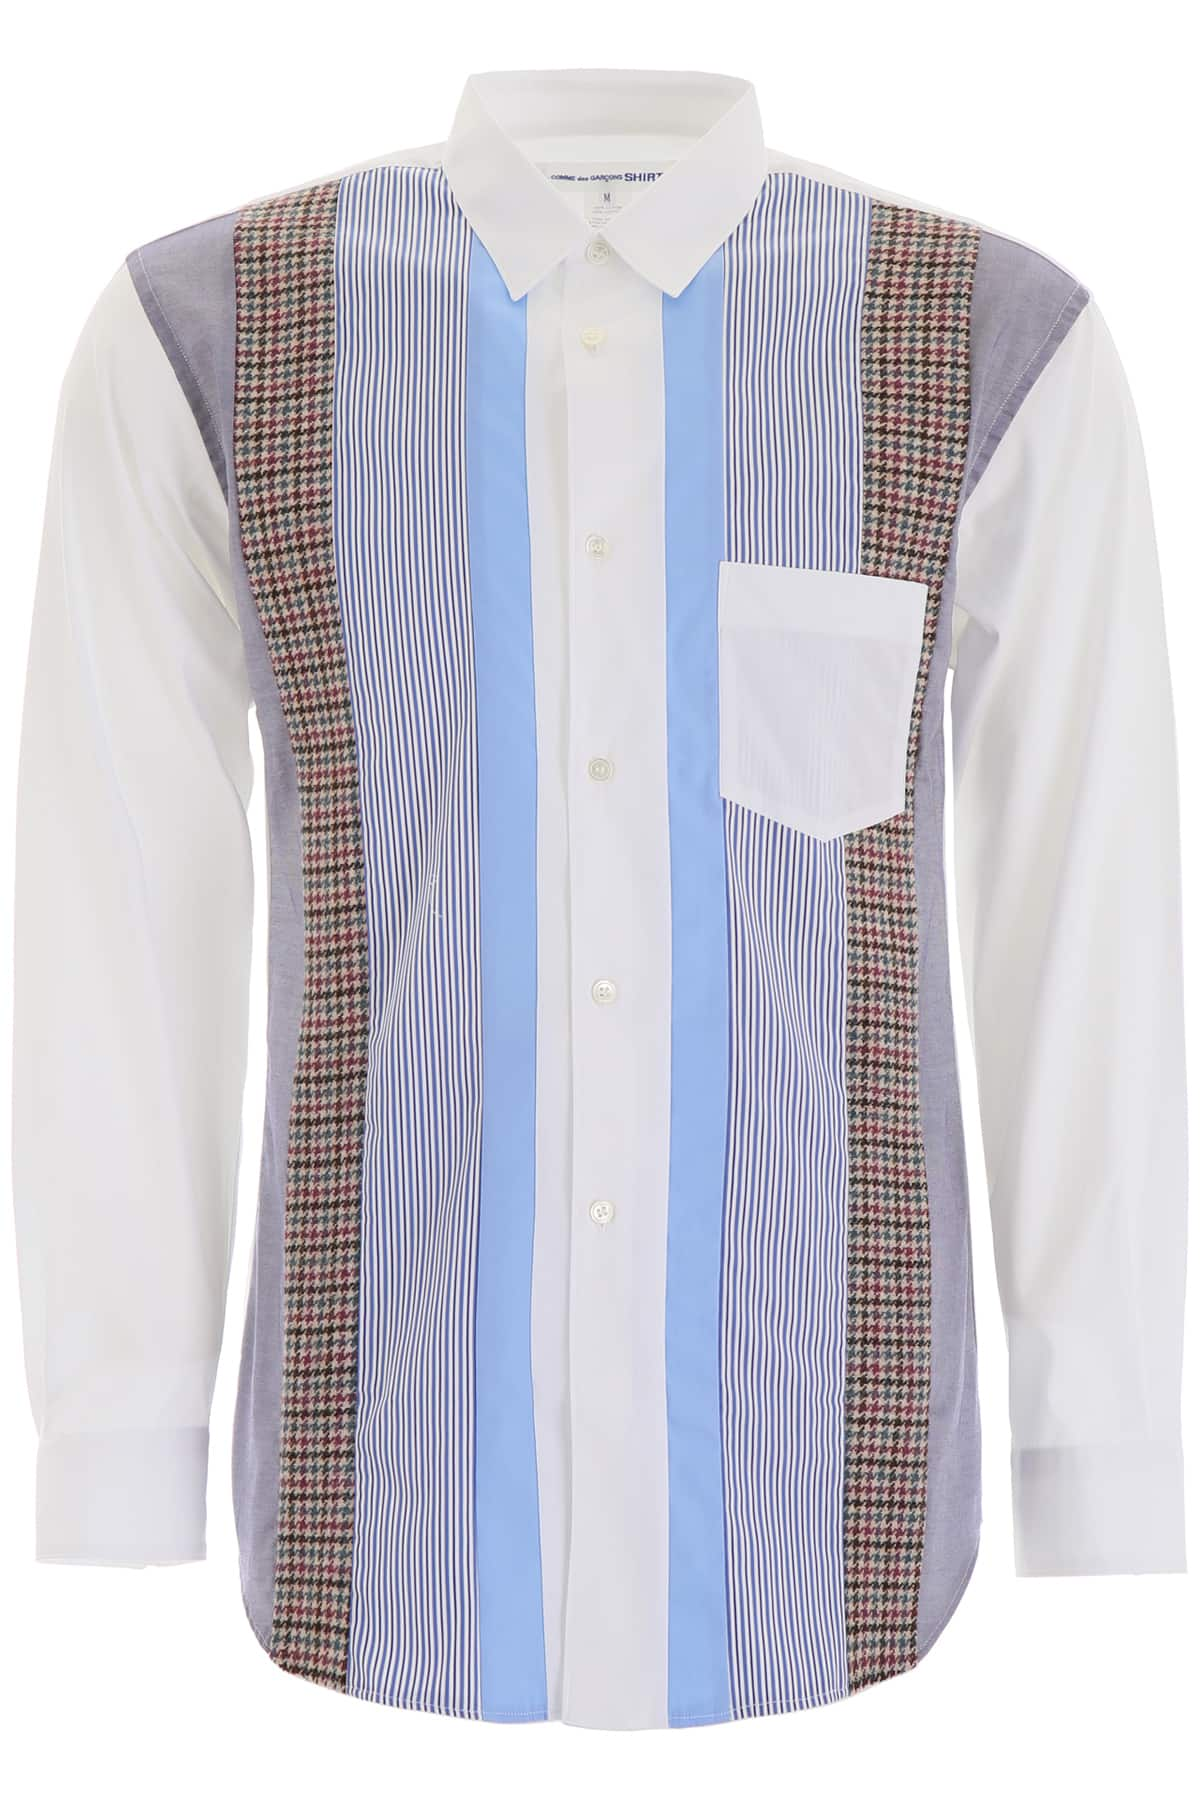 COMME DES GARCONS SHIRT STRIPED PATCHWORK SHIRT M White, Light blue, Blue Cotton